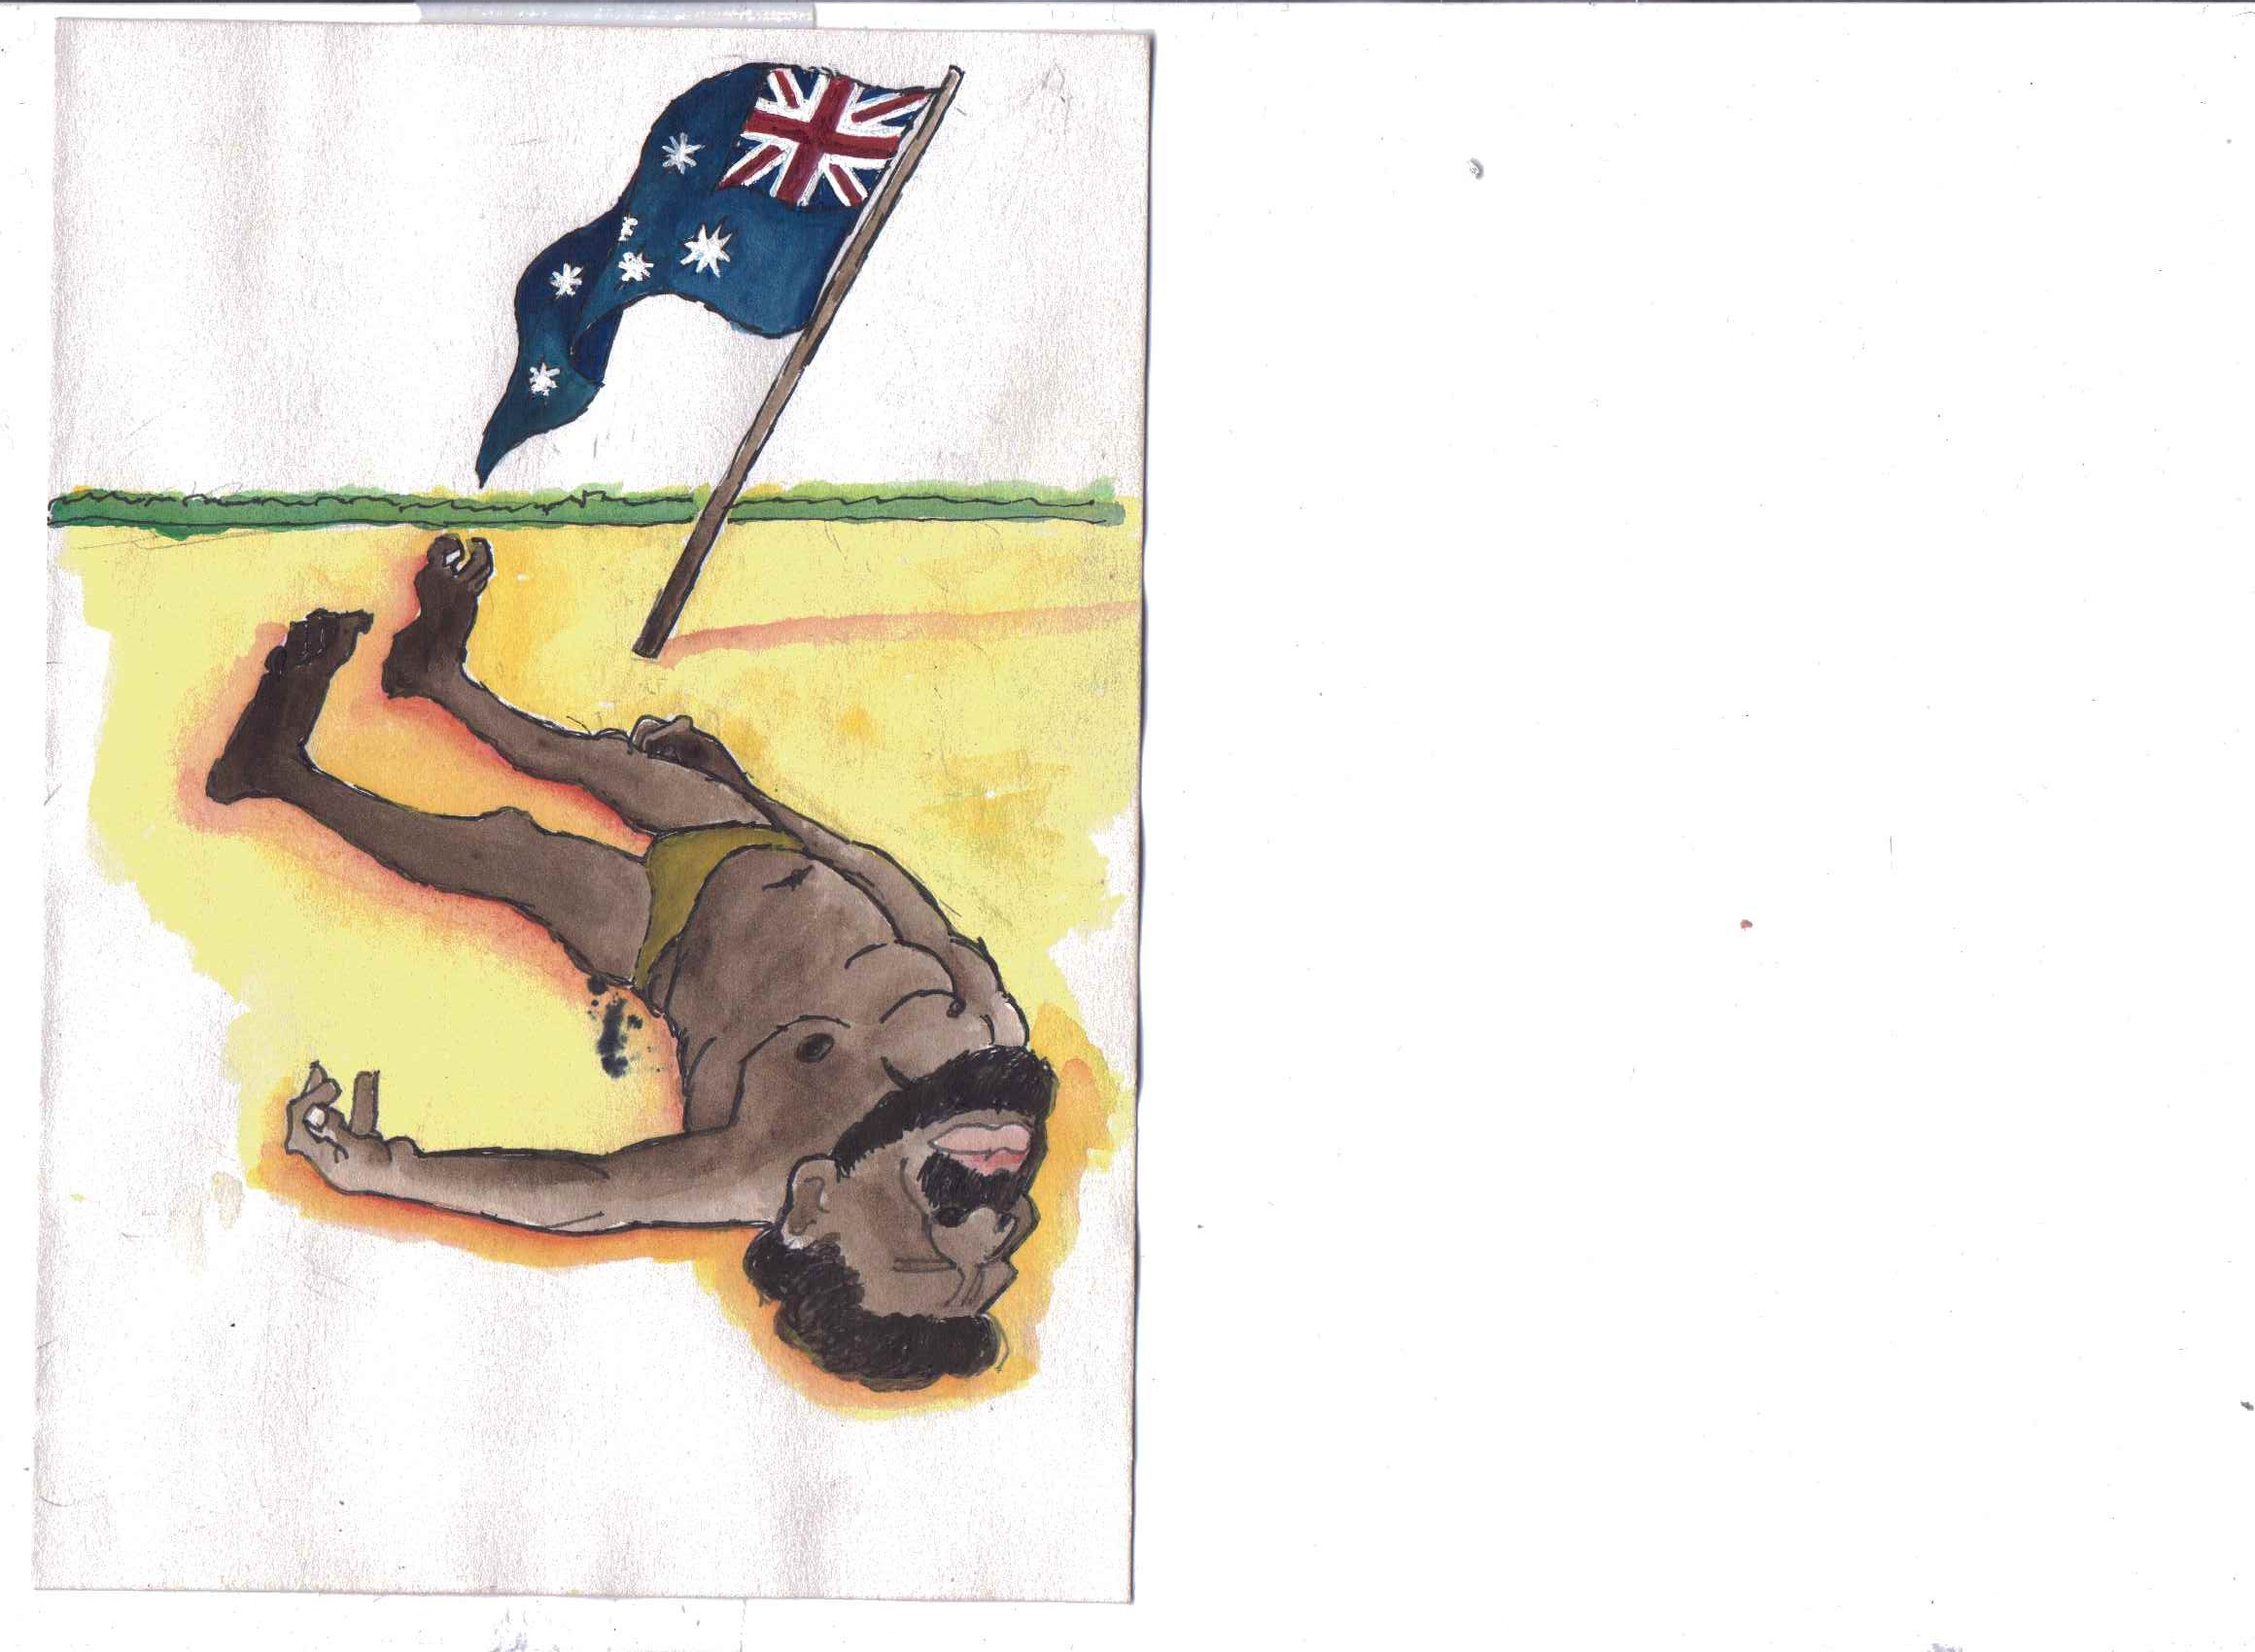 A is for Austrialia - Aborigines - Jeff Perks